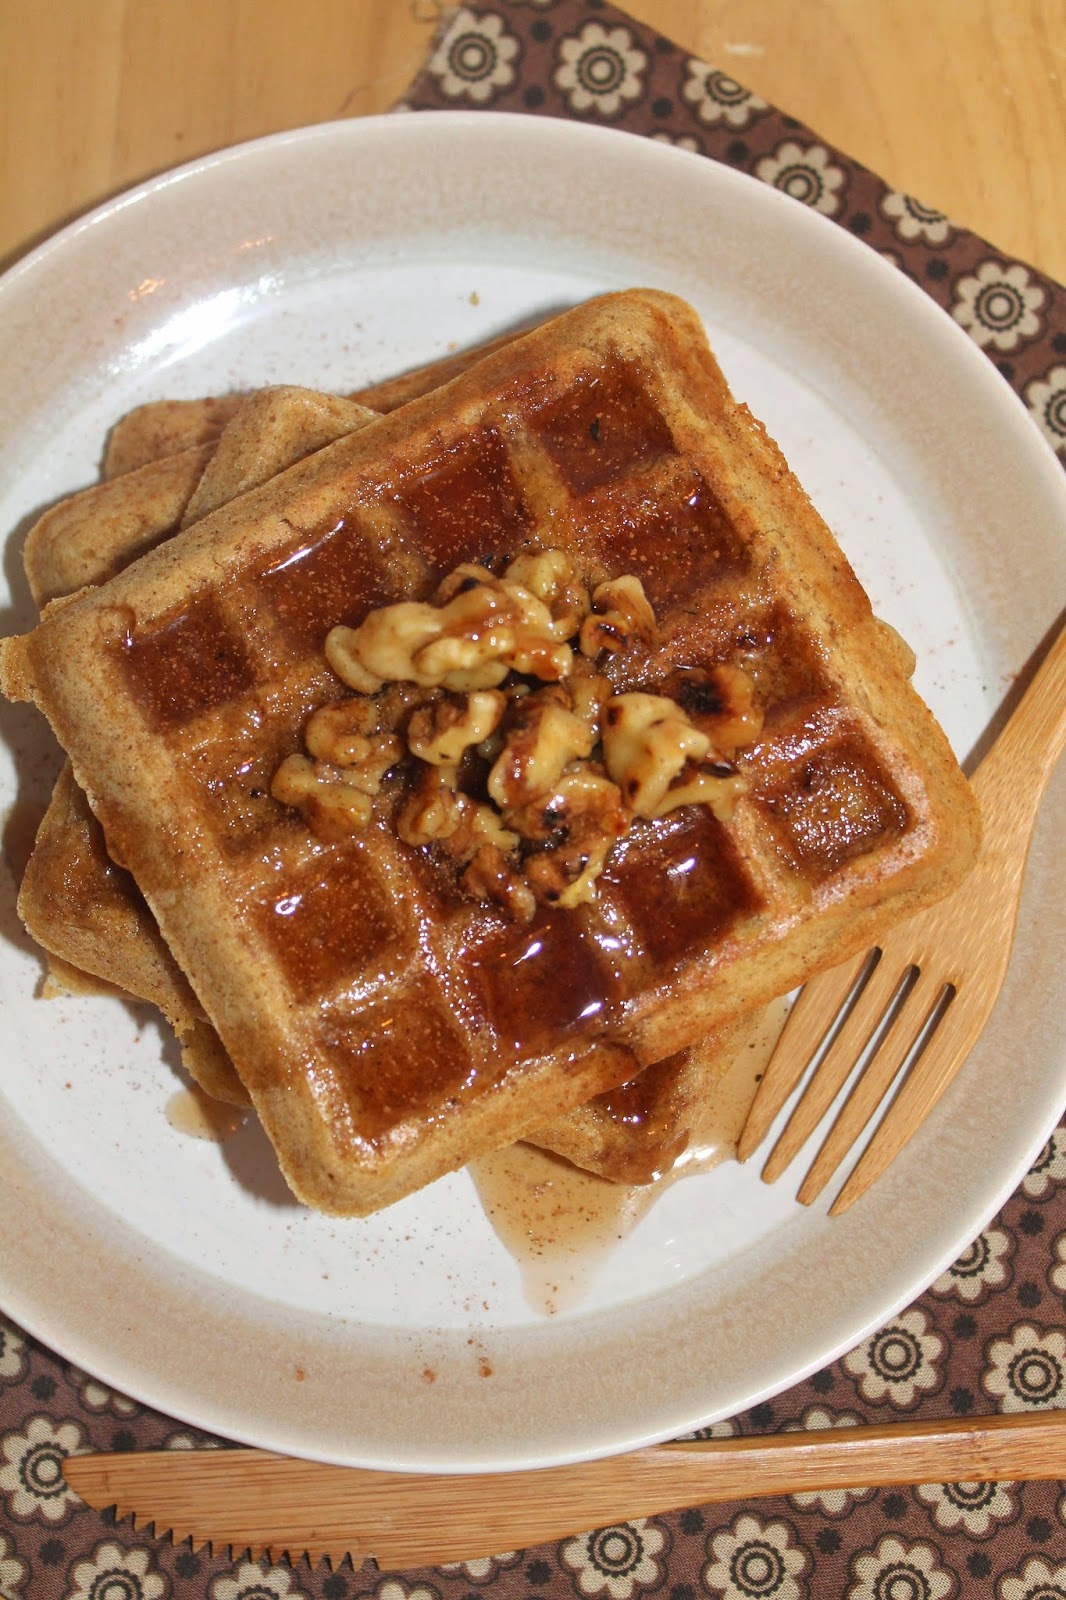 ... : Whole wheat acorn squash waffles with walnut and cinnamon syrup